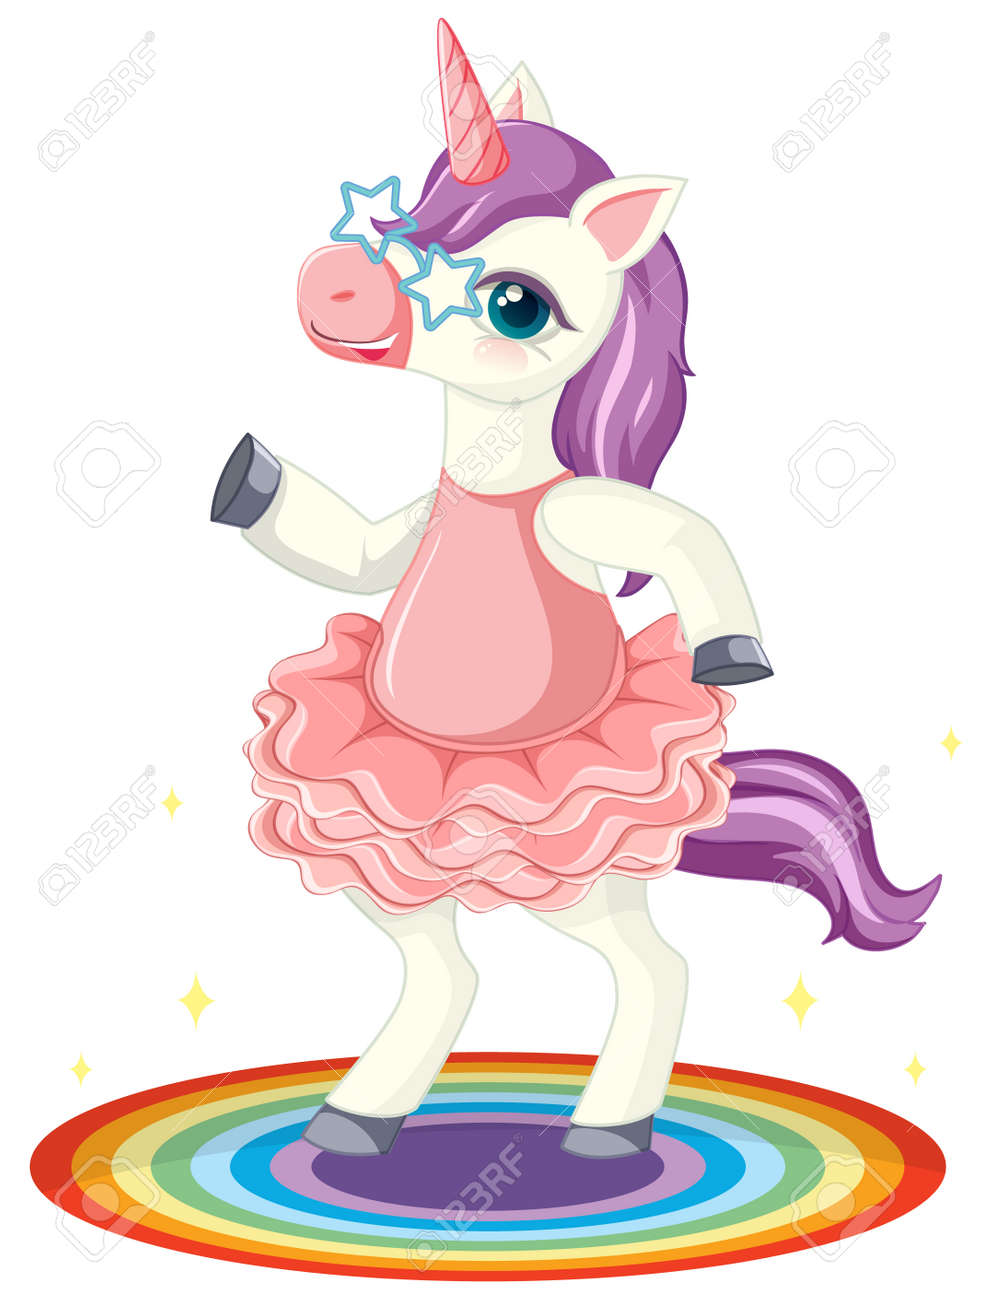 Cute purple unicorn wearing star glasses in standing on rianbow position on white background illustration - 148629543